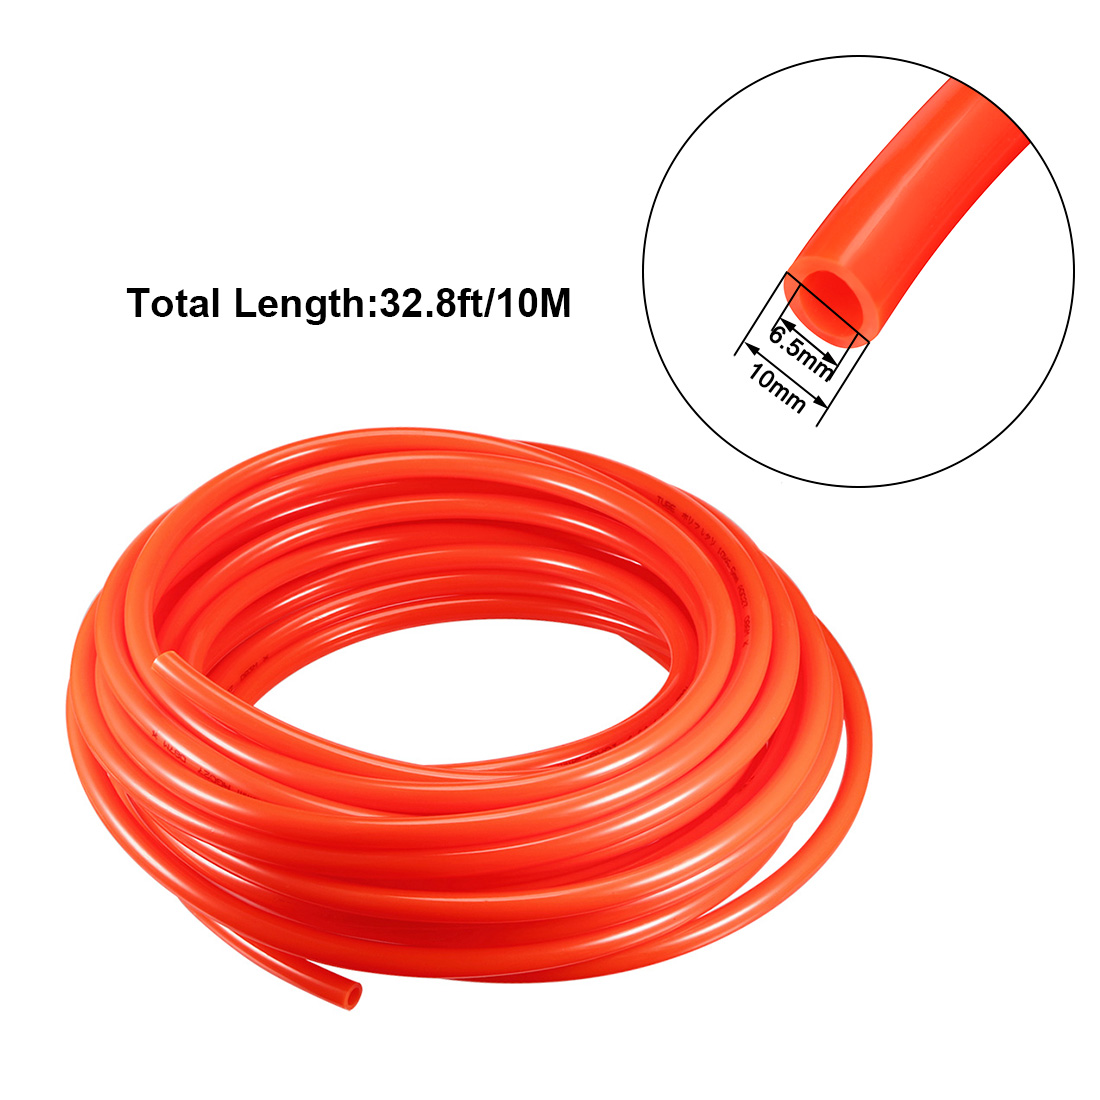 10mm X 6.5mm Pneumatic Air PU Hose Pipe Tube 10 Meter 32.8ft Red - image 1 of 4